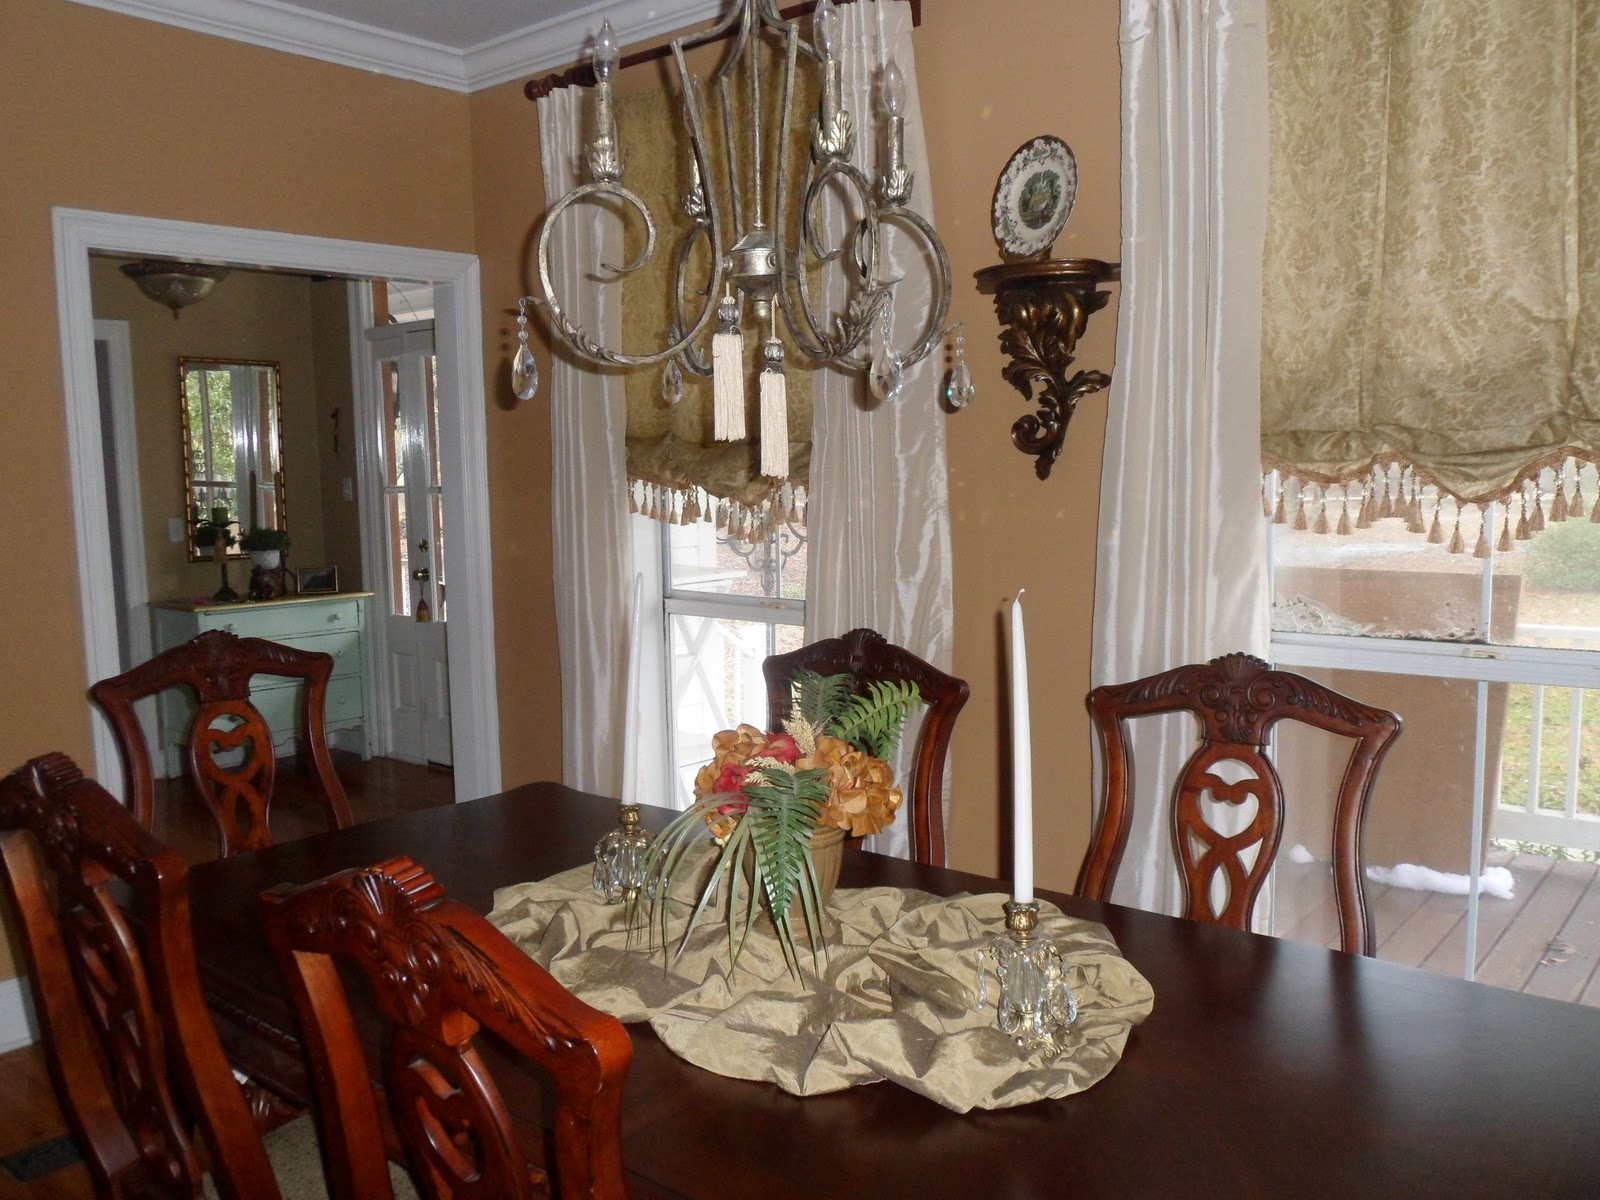 Just Love My Dining Room And Enjoy Having Family Meals Here